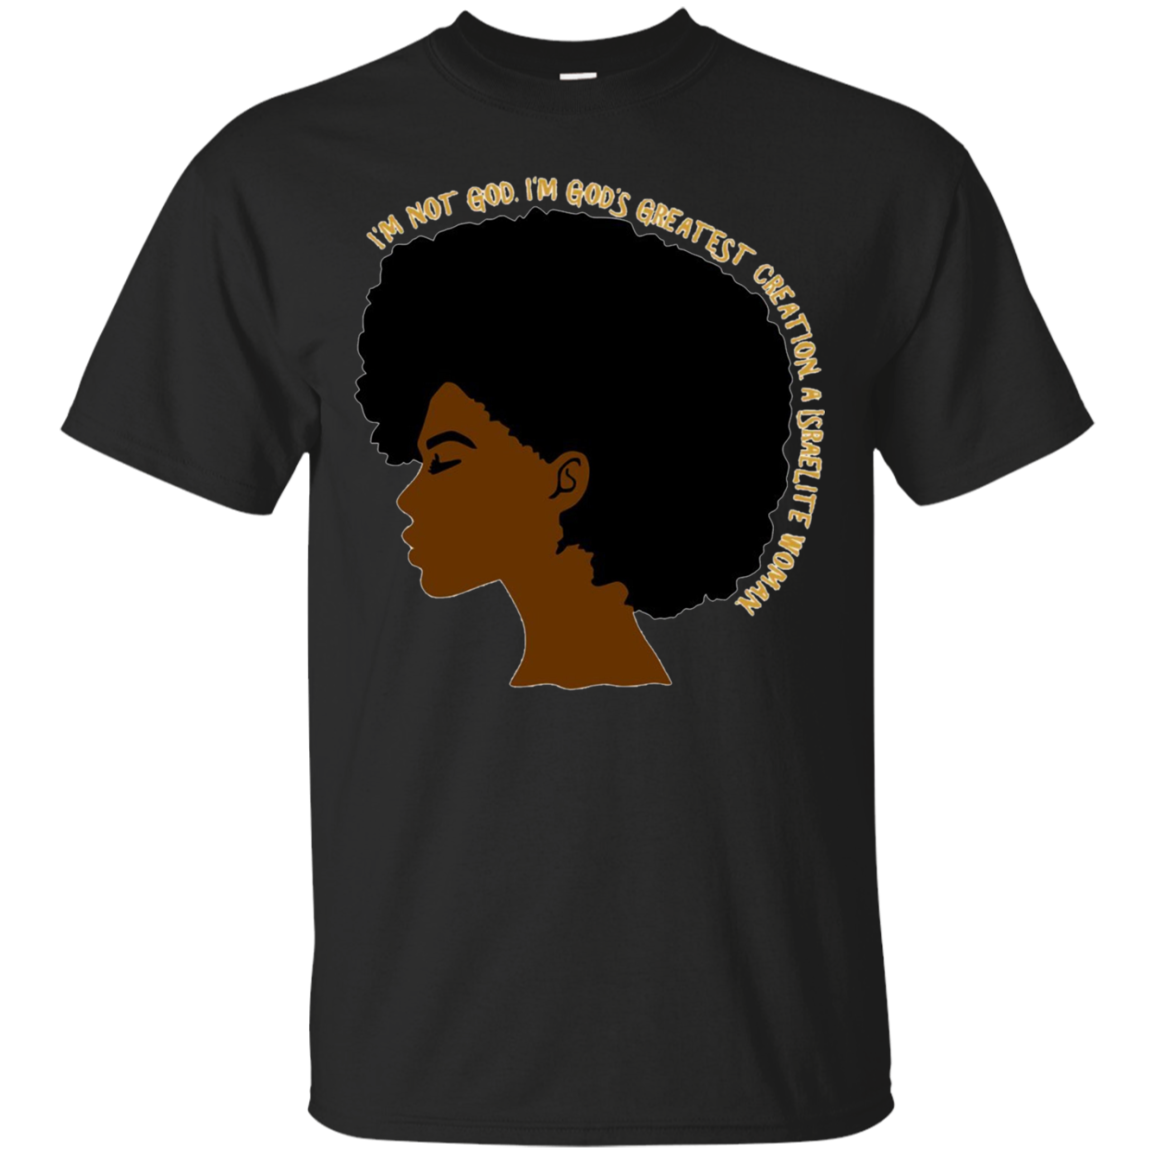 Womens I'm Not God Woman's Hebrew Israelite T-Shirt 12 Tribes Yah